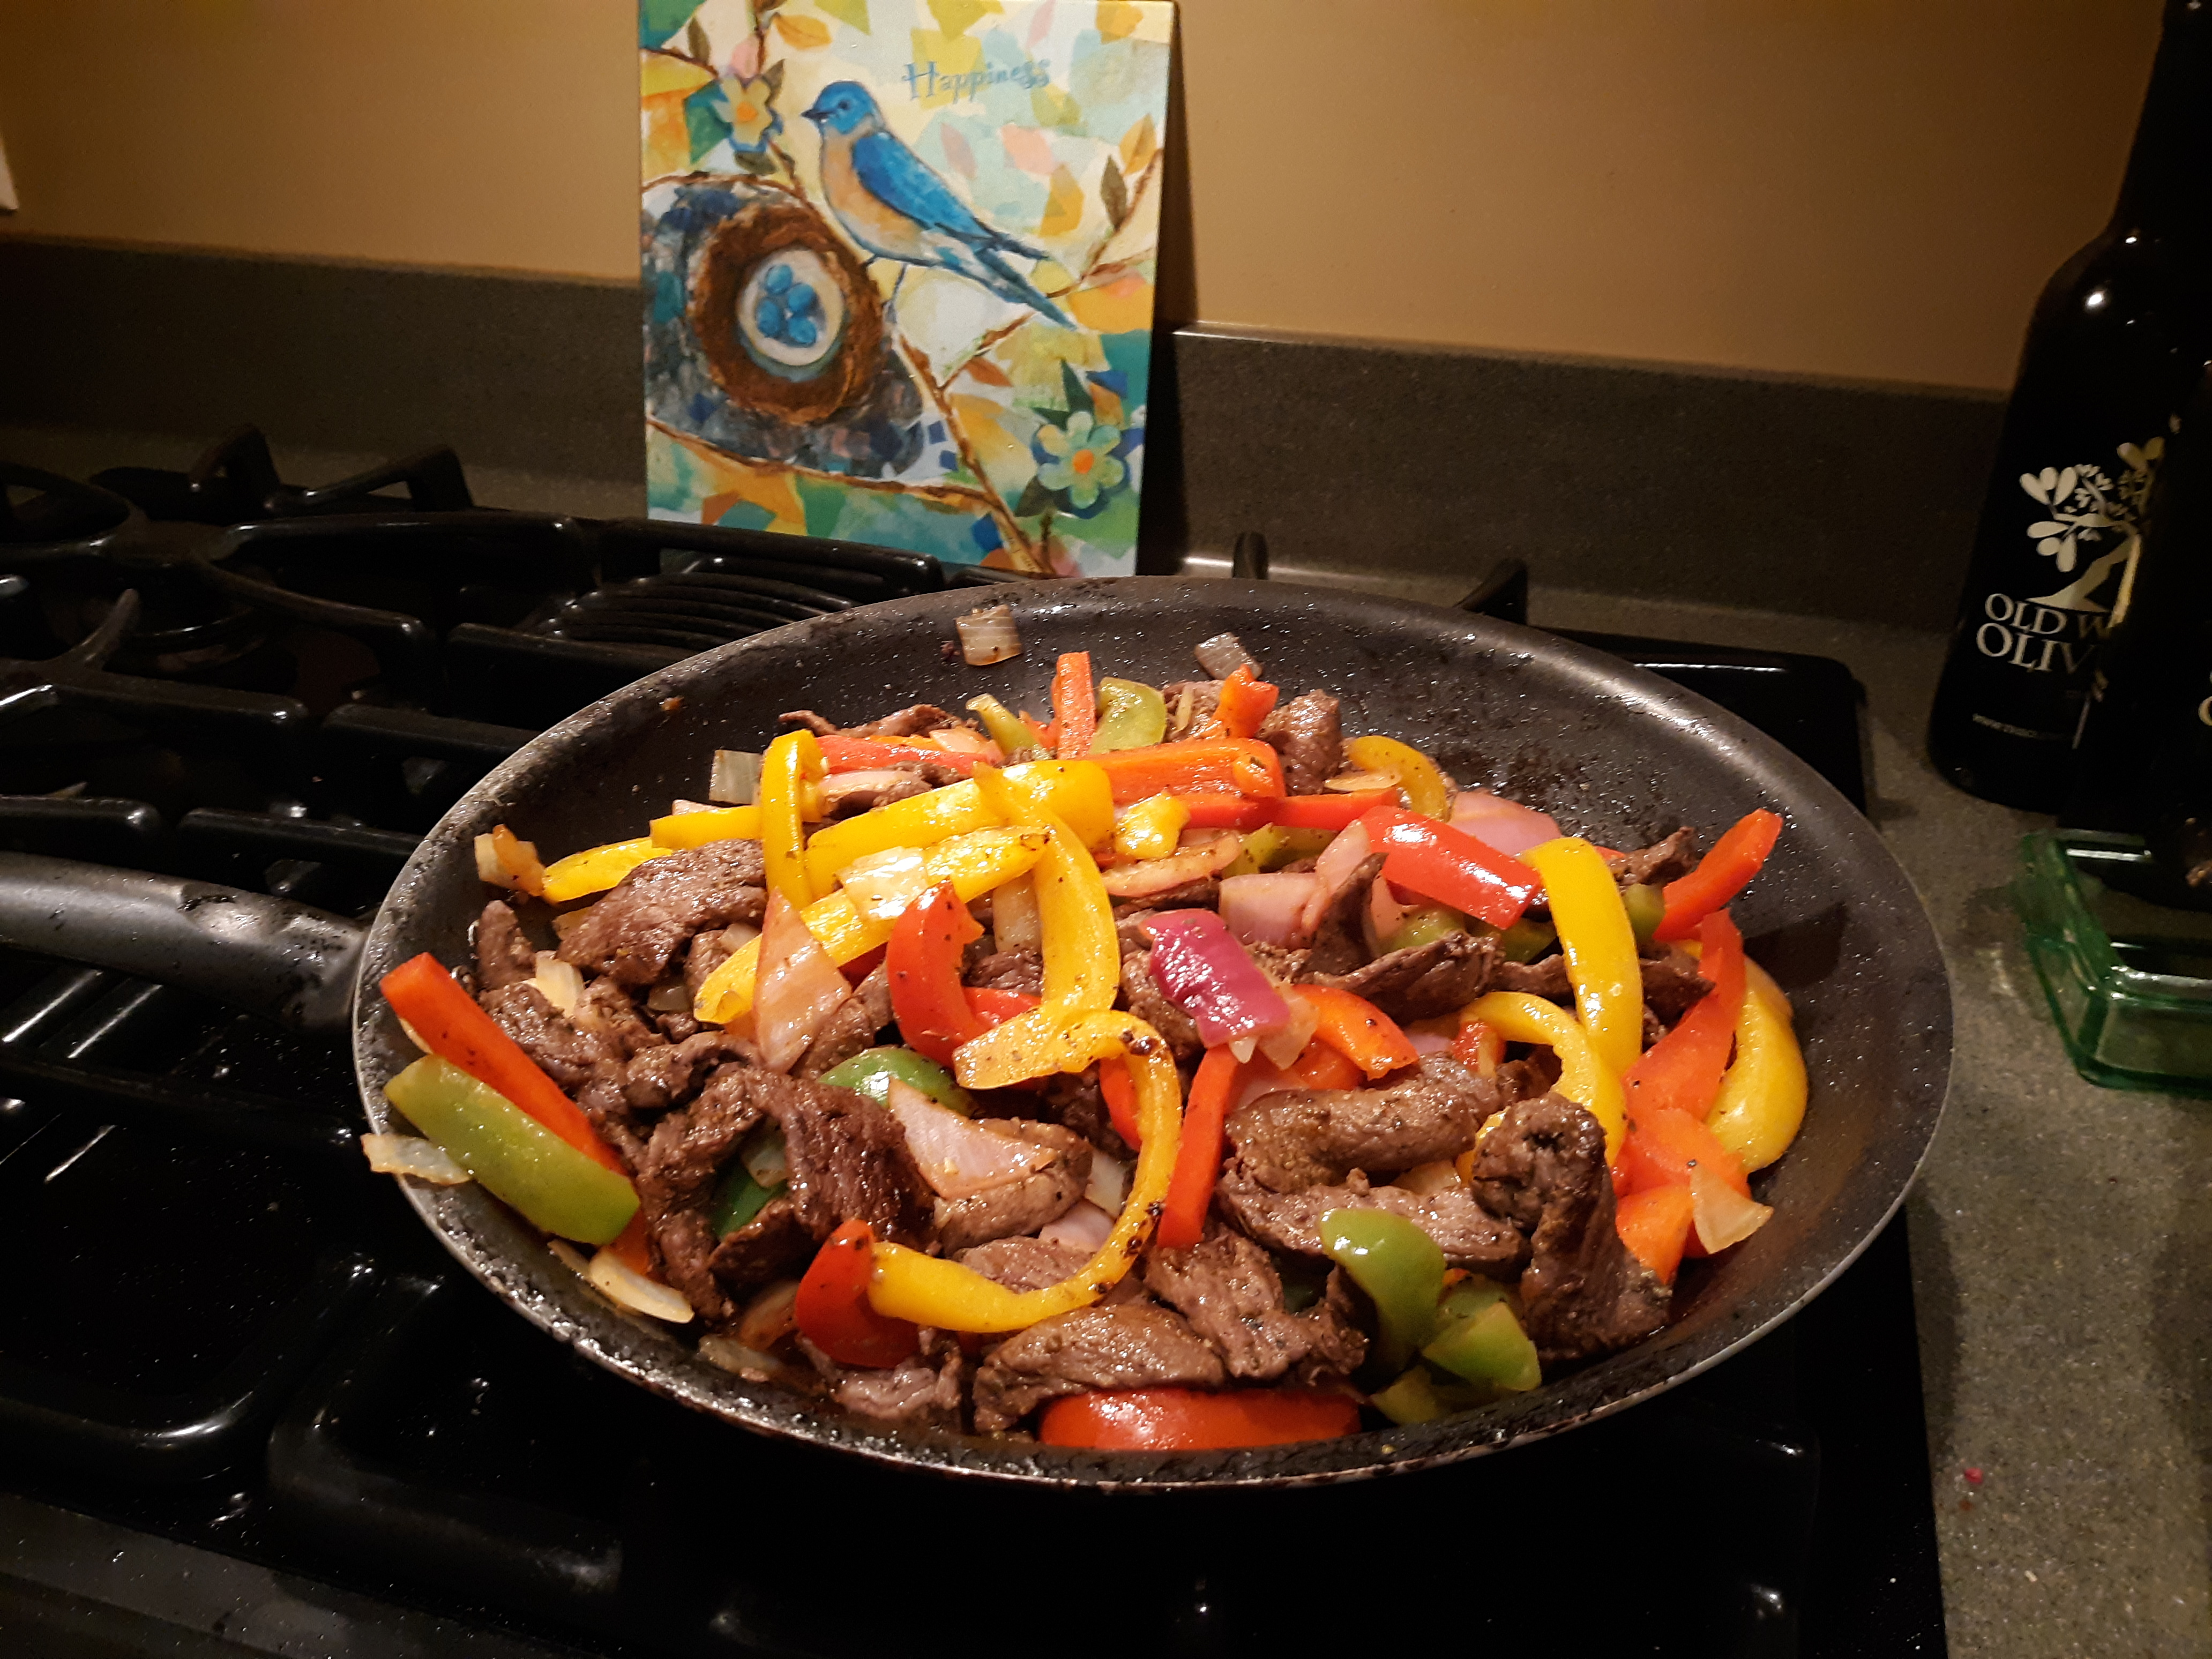 Venison Fajitas Mary Lou 'Ronda' Throop